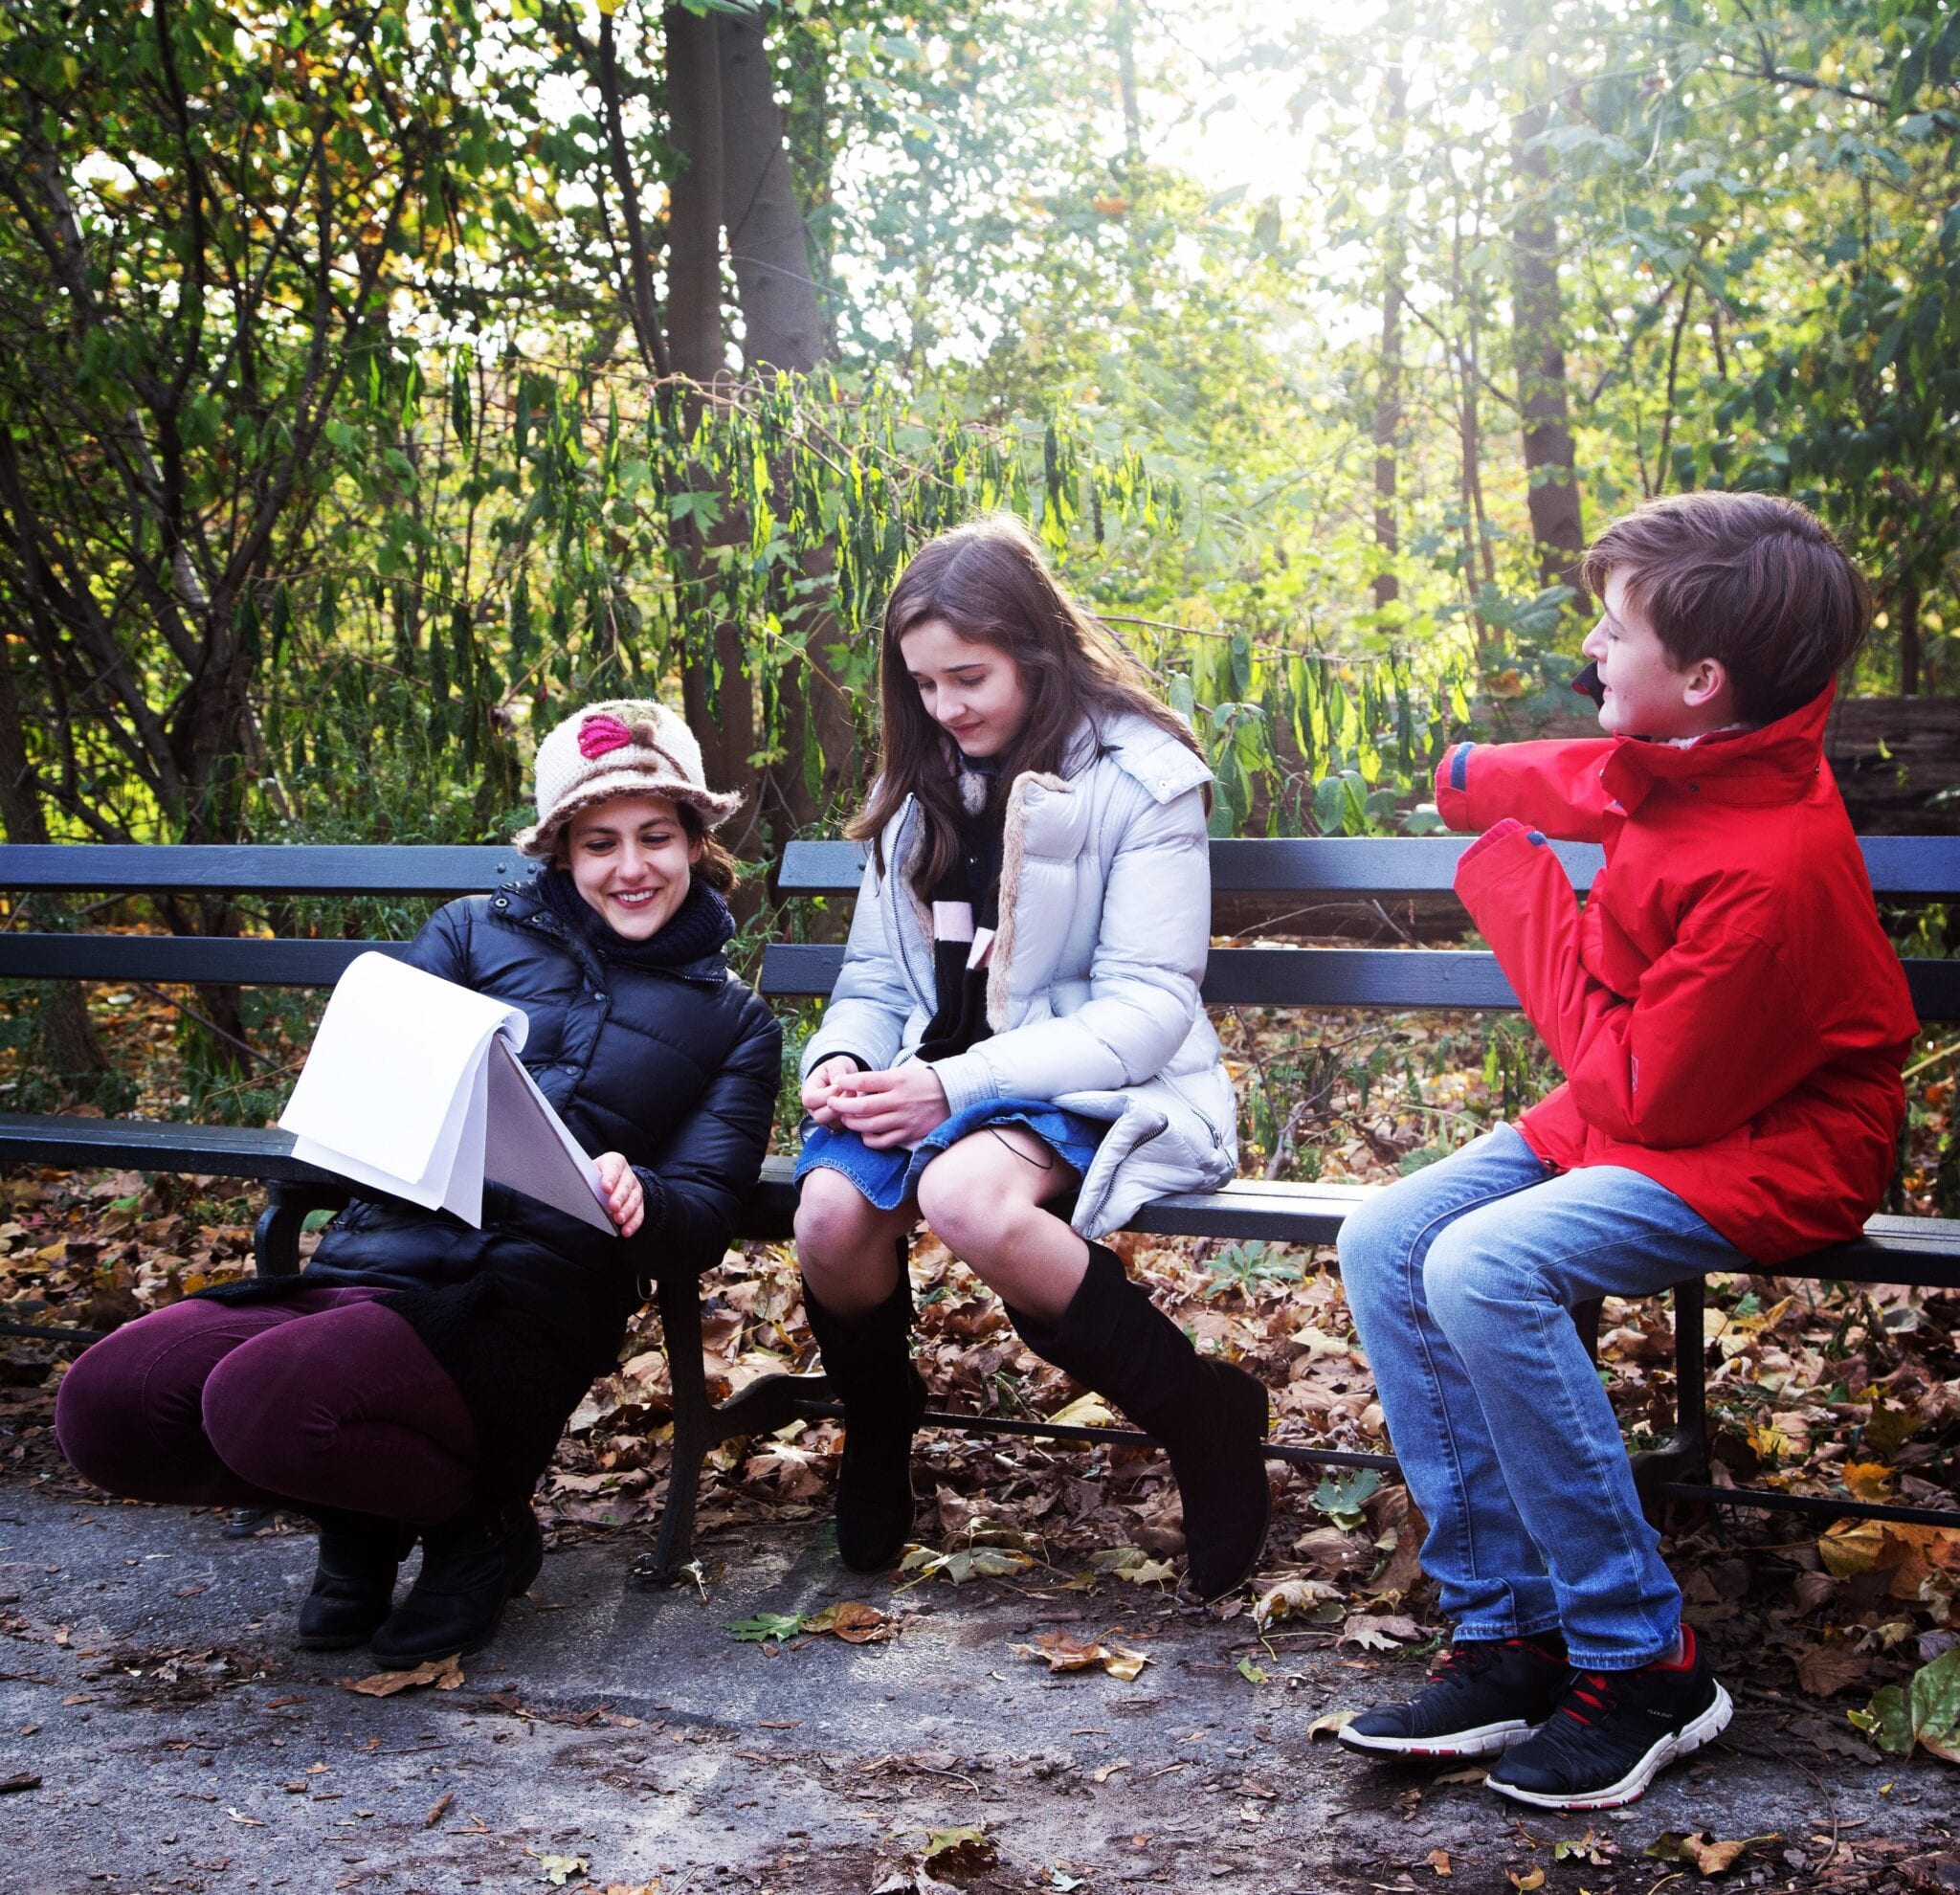 Nicola Rose On Set Of In The Land Of Moonstones With Actors Natalie Keating, 11, And Rand McAvoy, 12. Photo ©Elizabeth Mealey